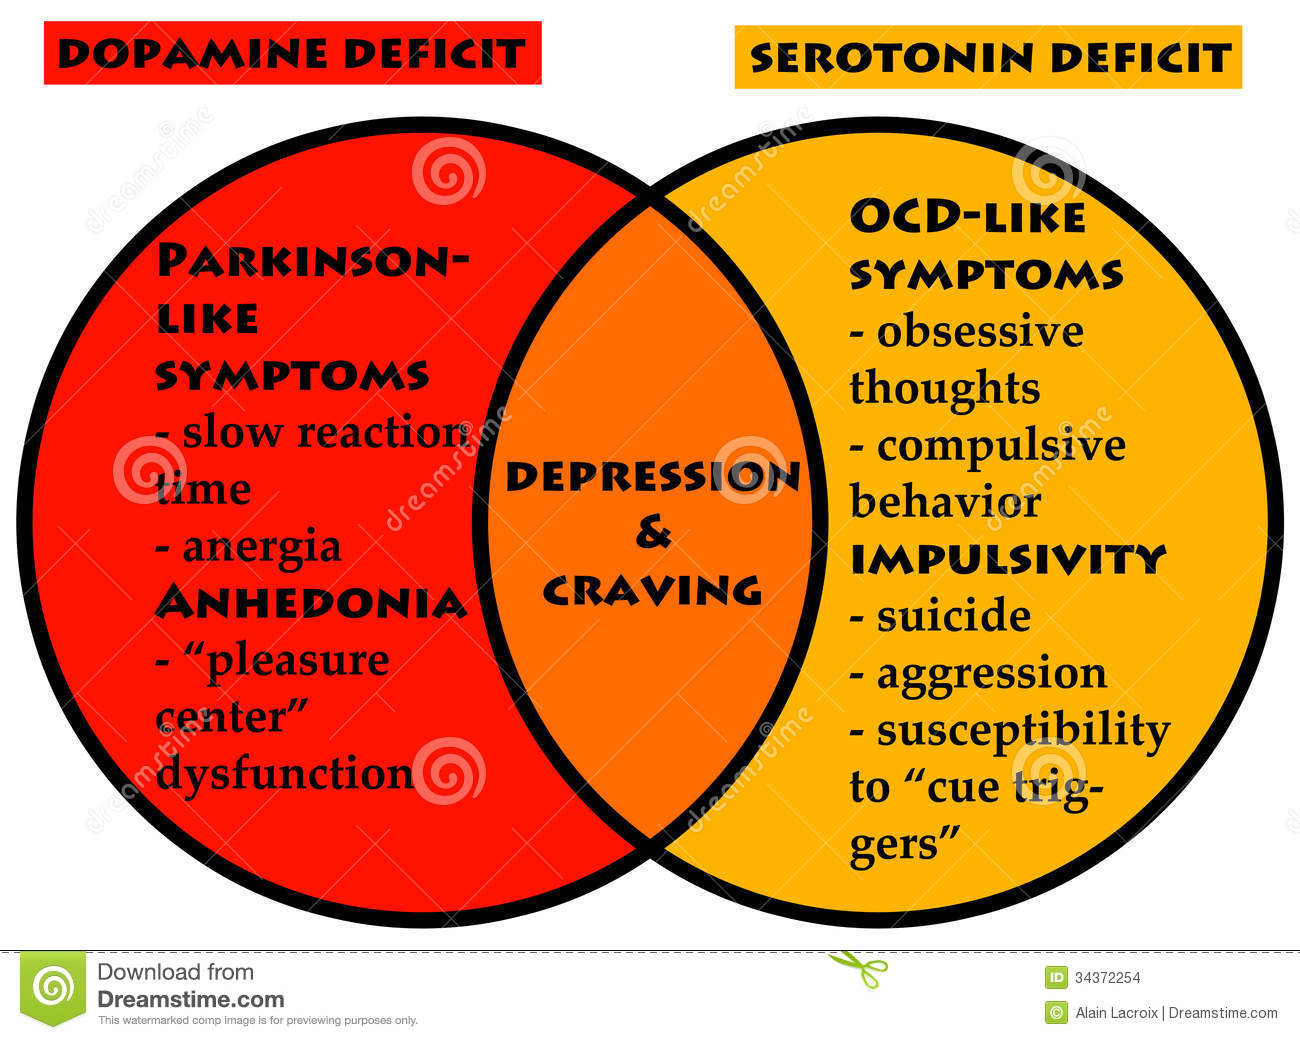 an analysis of the effects of serotonin on the mind and body High serotonin levels: symptoms & adverse  while the effects of serotonin increases are  decrease your levels of serotonin keep in mind that if you .